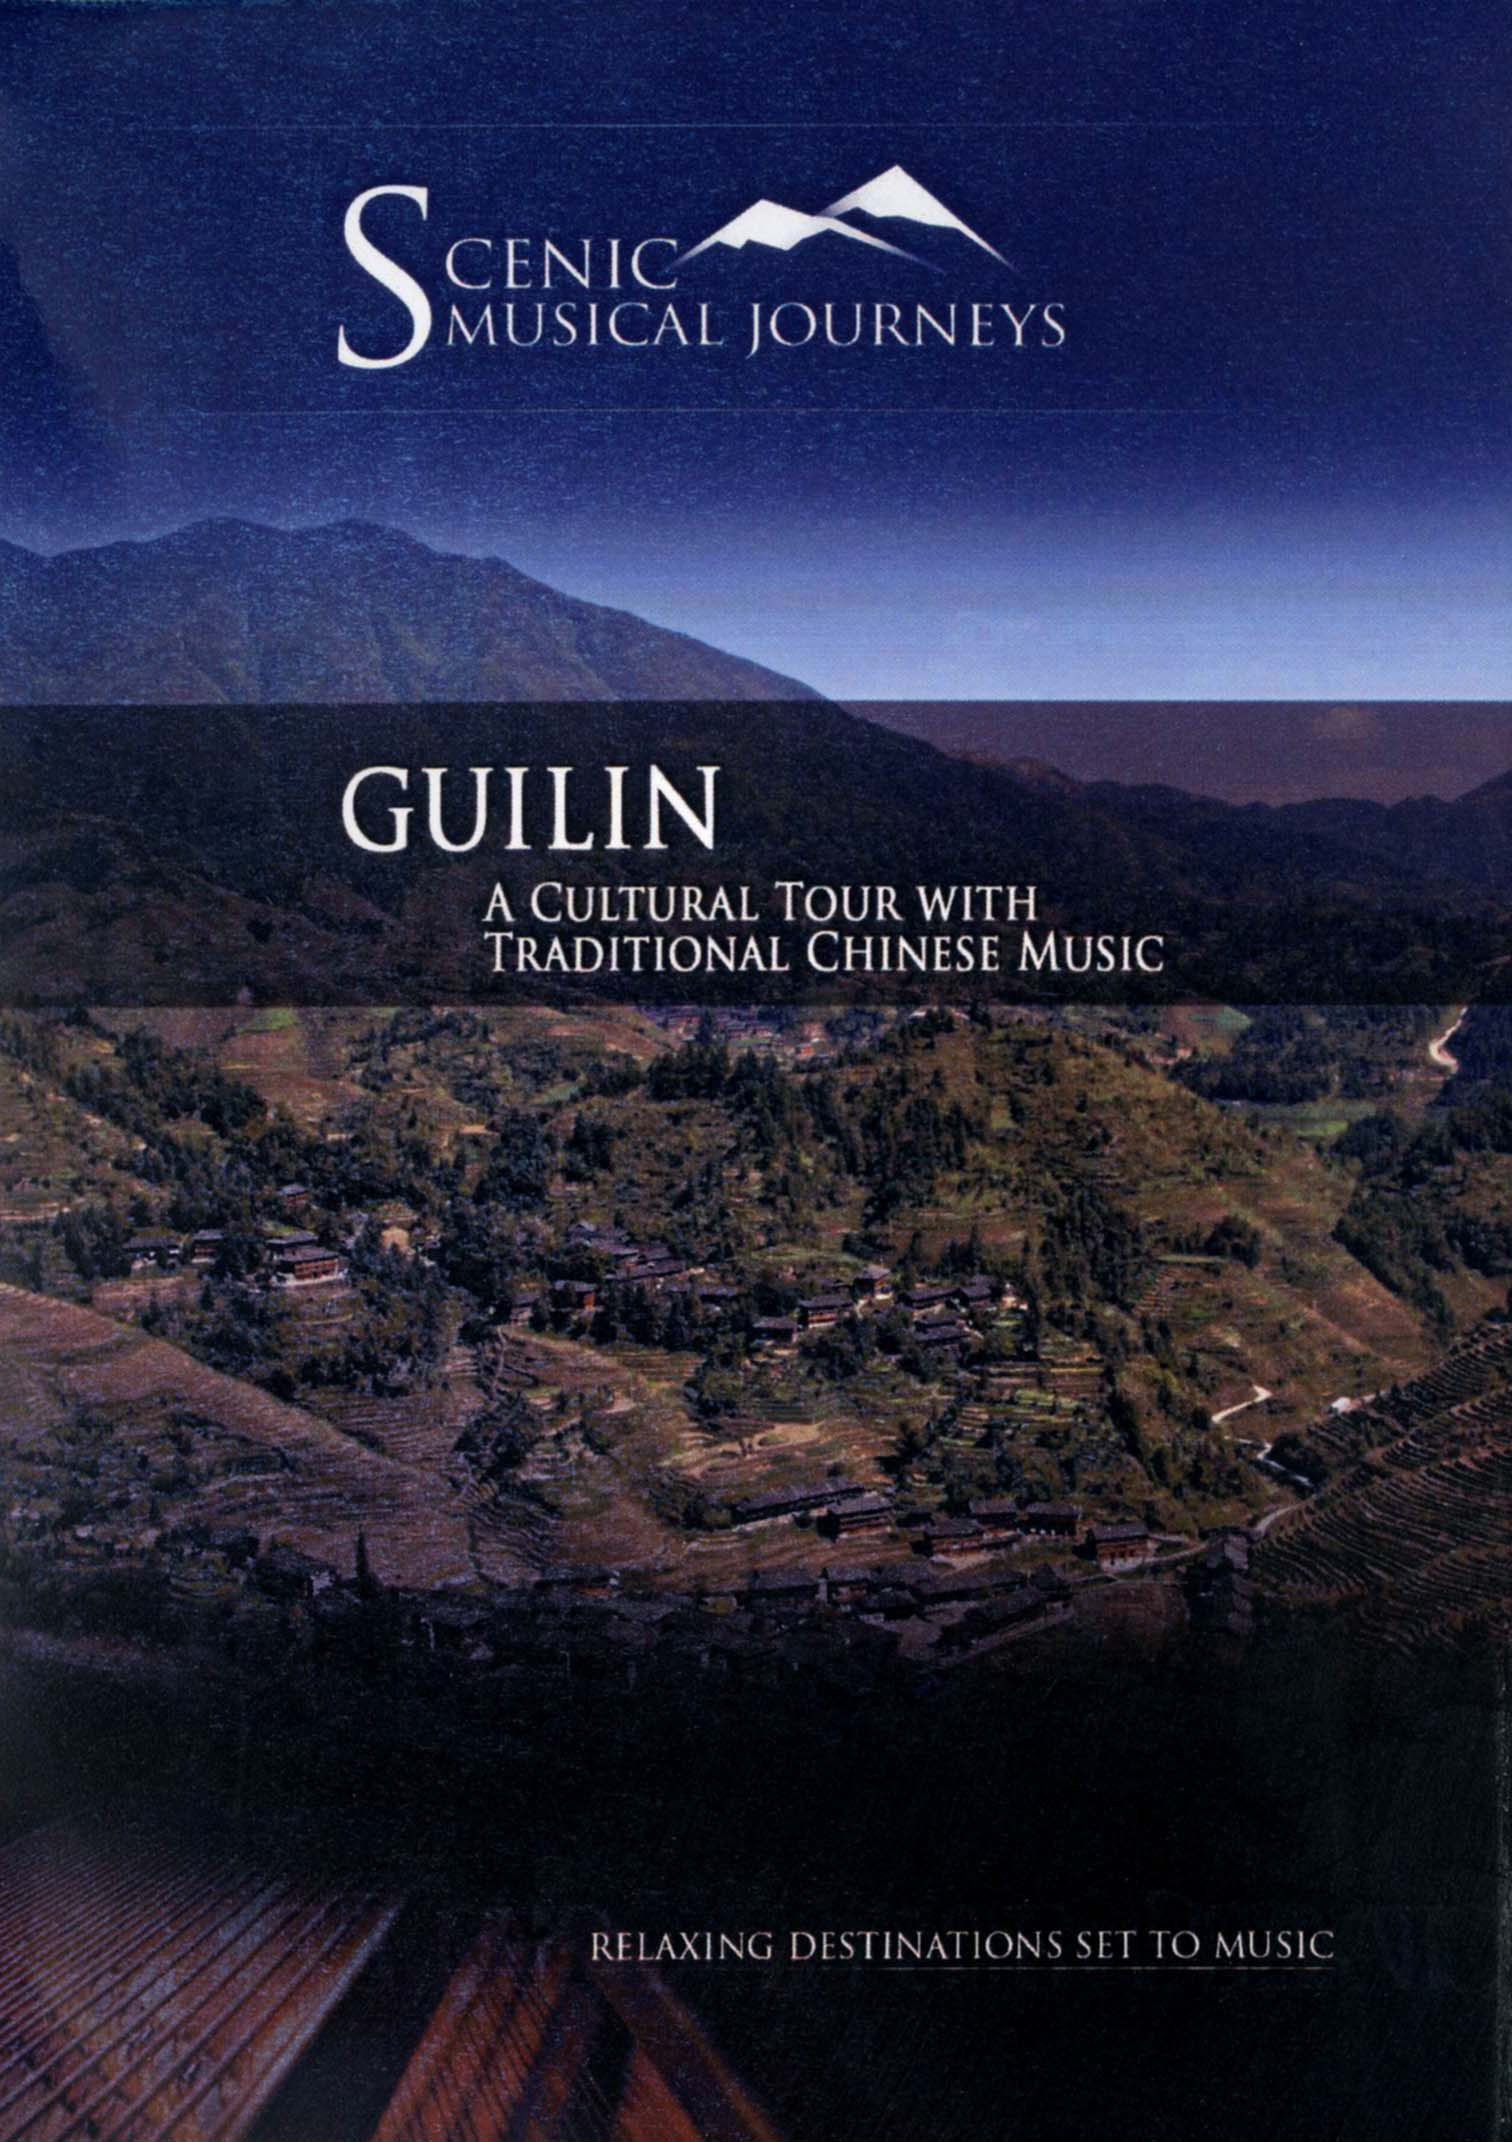 Scenic Musical Journeys: Guilin - A Cultural Tour With Traditional Chinese Music